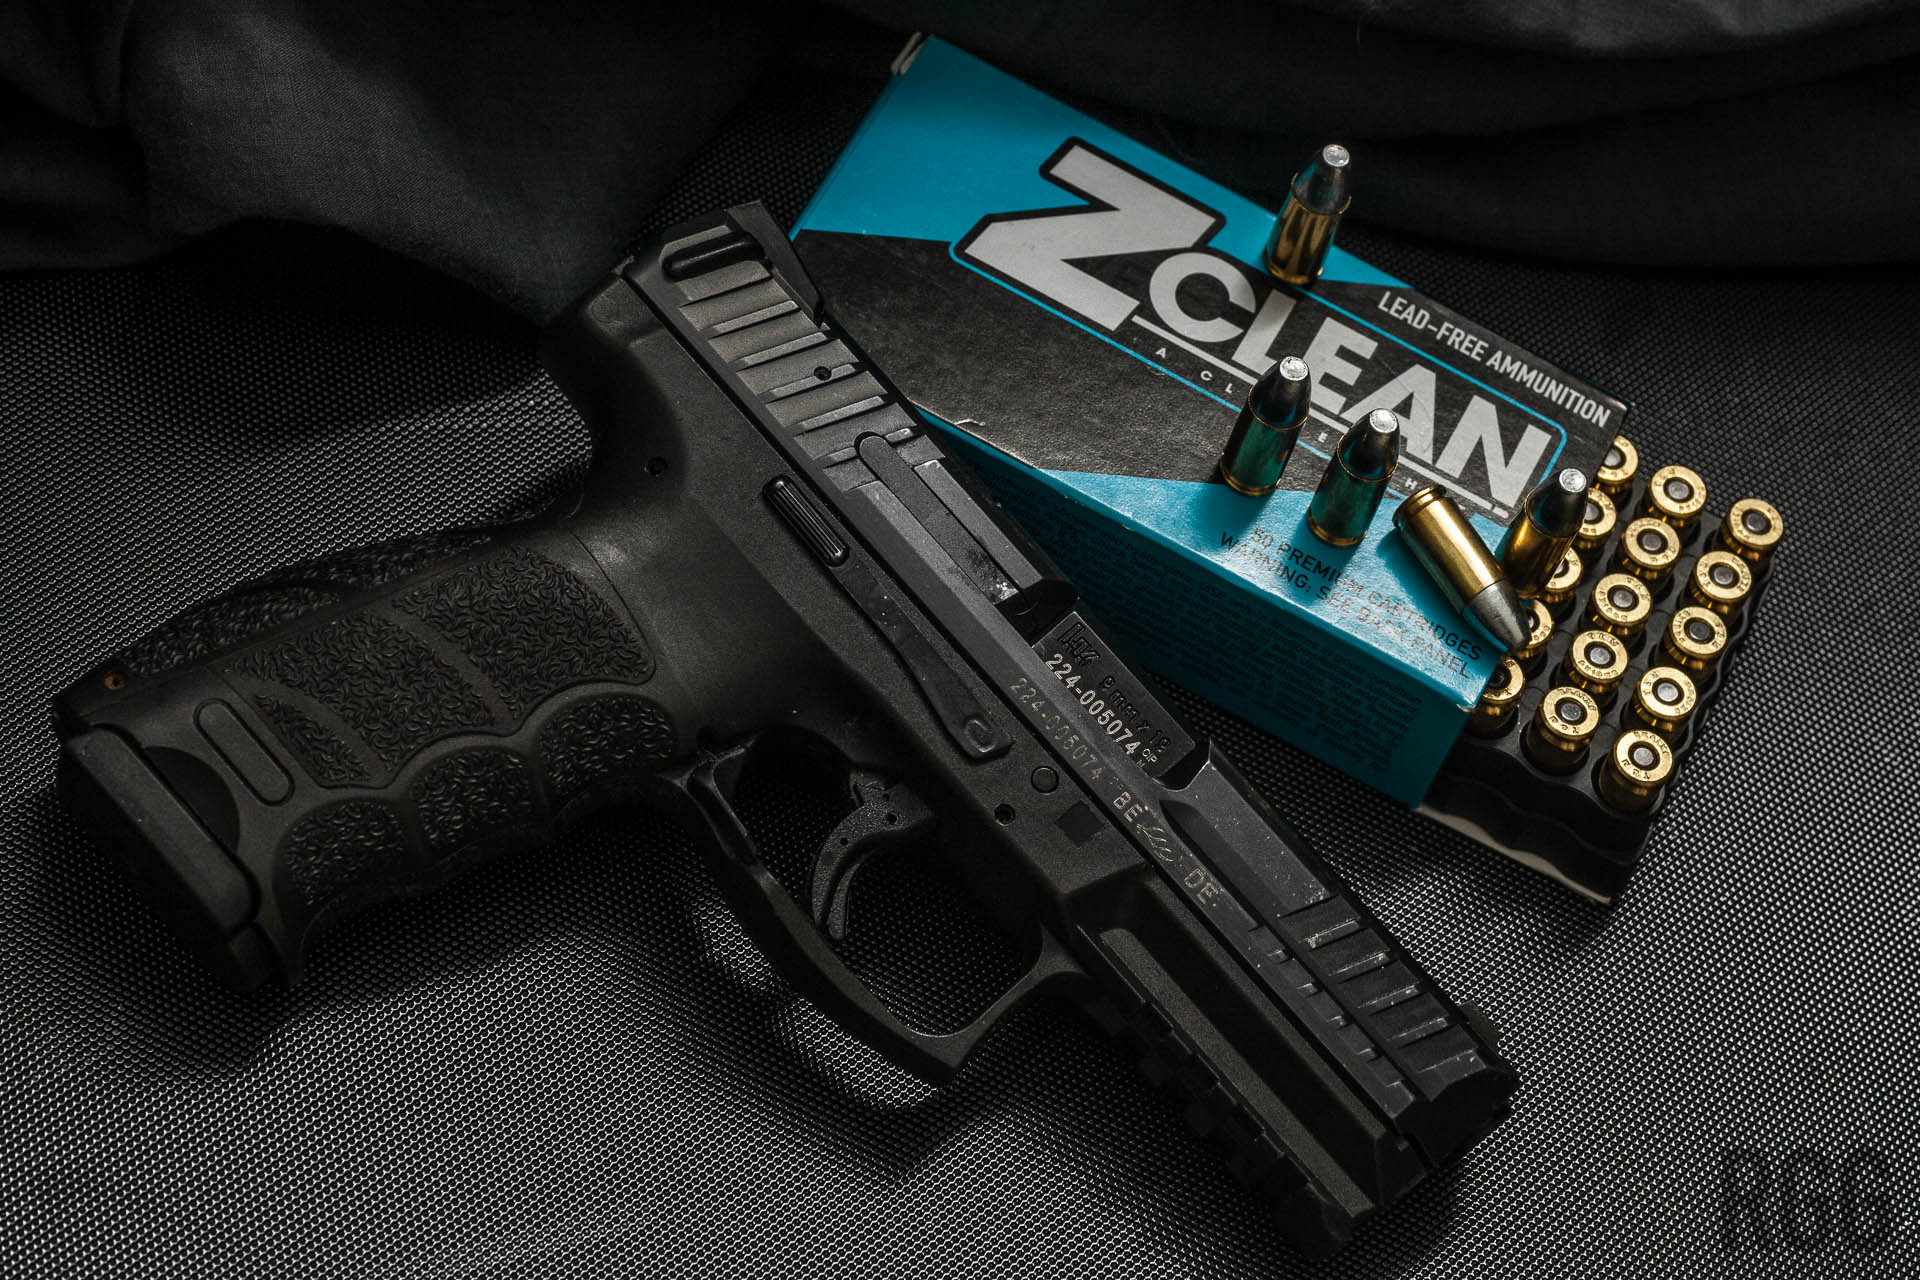 Alchemist Ammunition's Z-Clean 100gr 9mm solid zinc projectile ammo performed admirably during my testing.